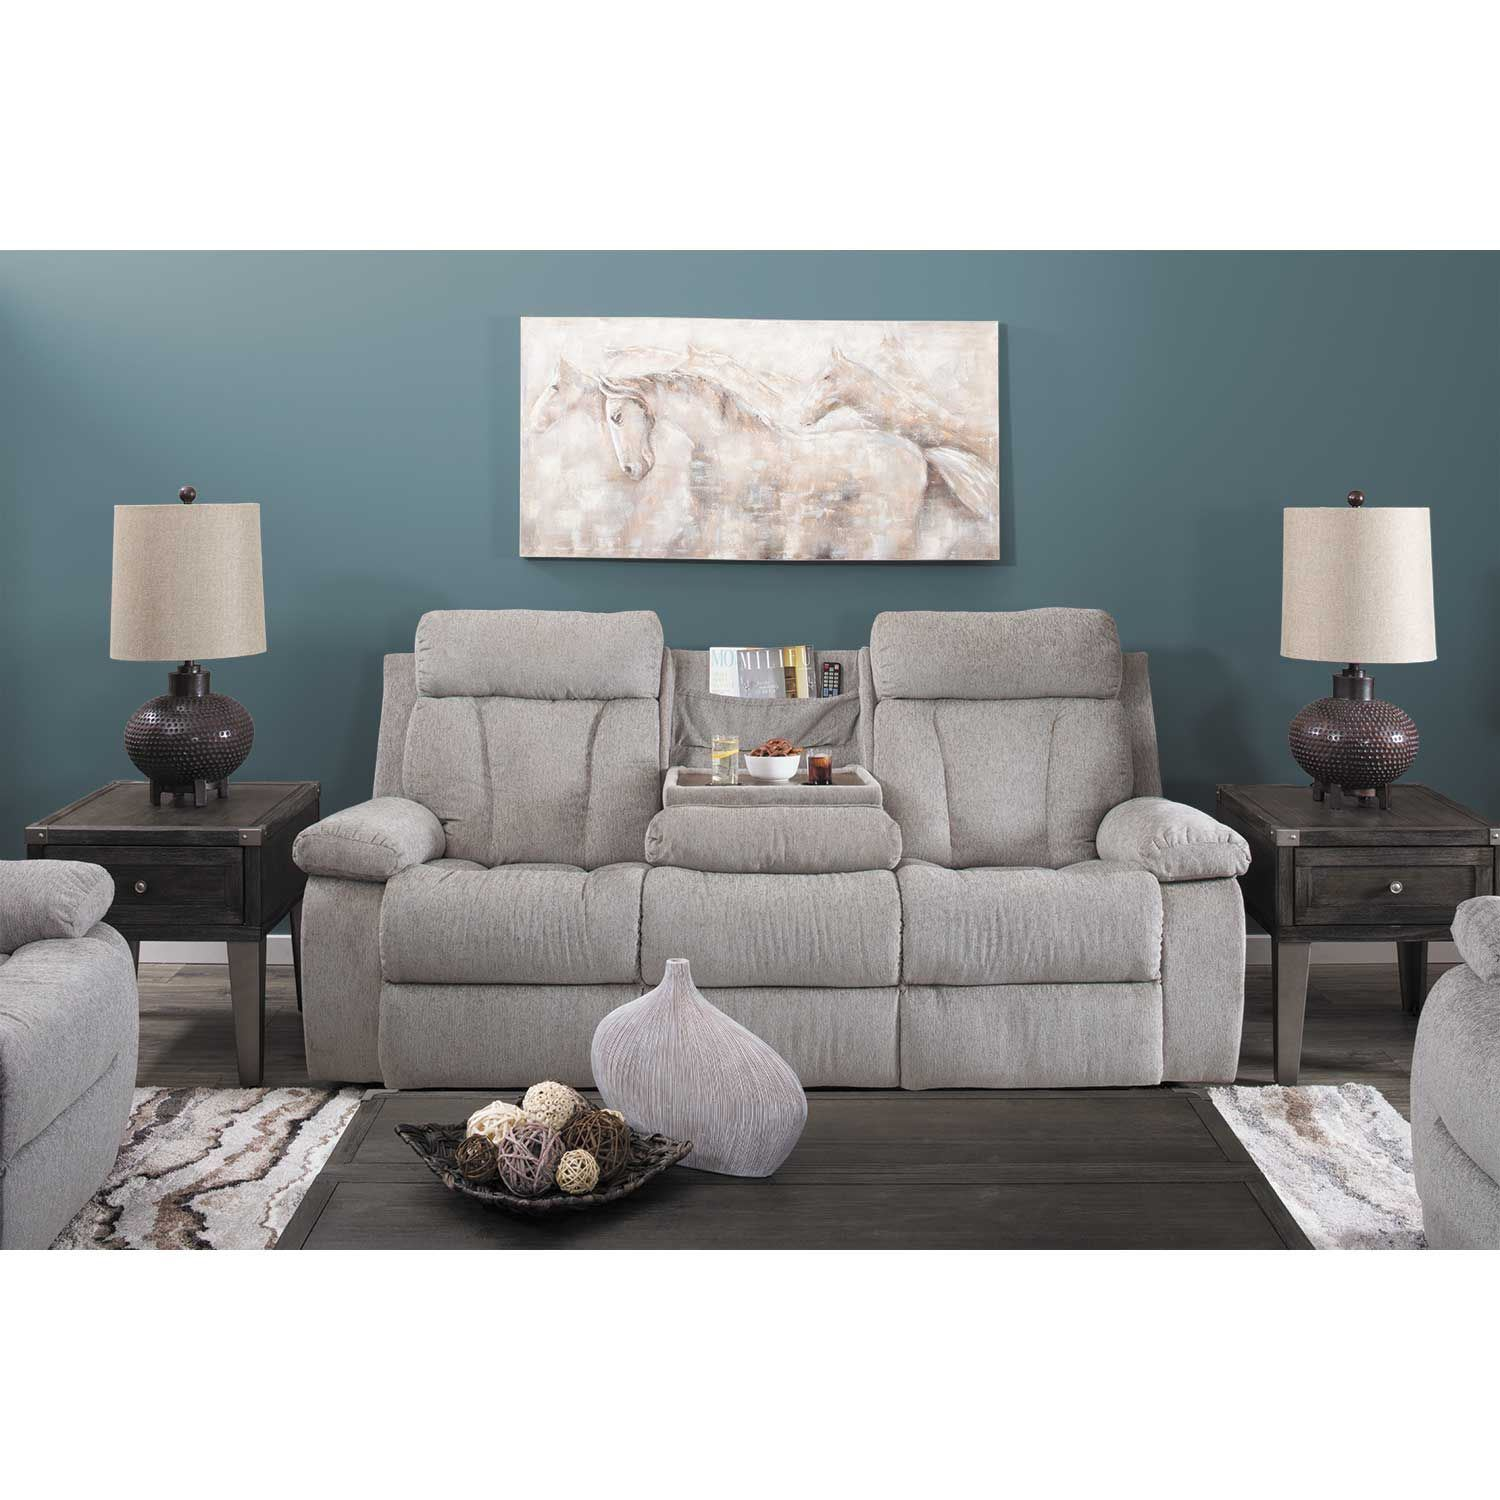 Loveseat Sofa Bed Ashley Furniture: Mitchiner Grey Reclining Console Loveseat